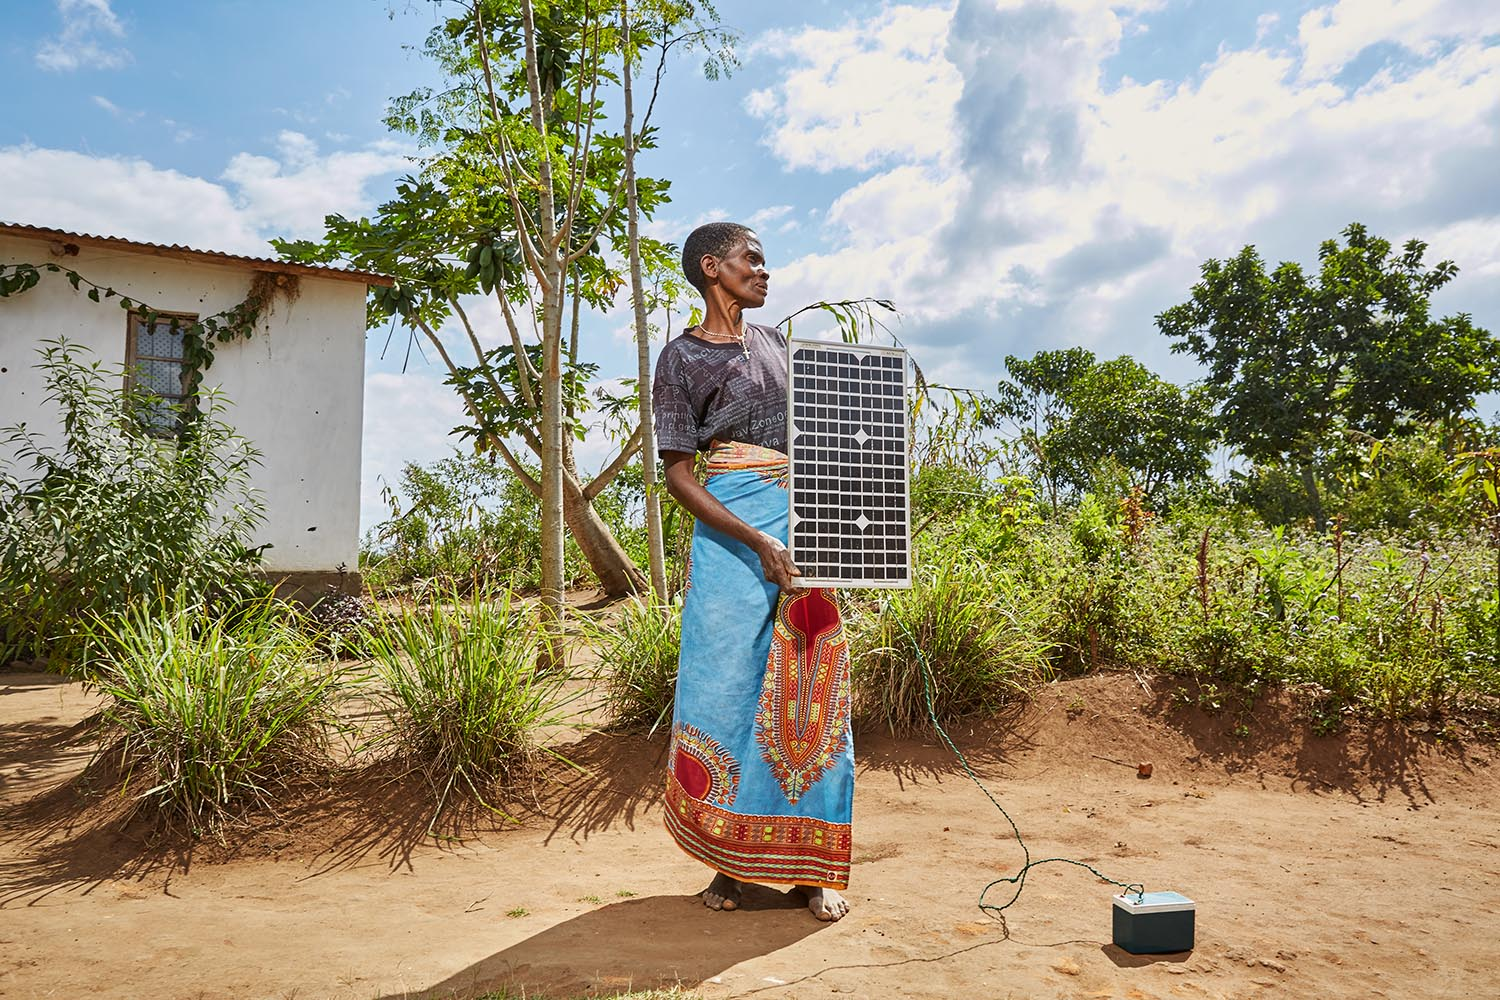 Violet Napazi, 57, holds up the solar panel owned by her son, Master, Luchenza, southern Malawi, 2017.  Charging mobile phones is becoming a profitable business, especially since solar panels are becoming cheaper to buy and build. Until recently, Violet's family used the solar panel to charge a battery which was then to used charge mobile phones. But since the inverter burnt out, it can only power one phone at a time.